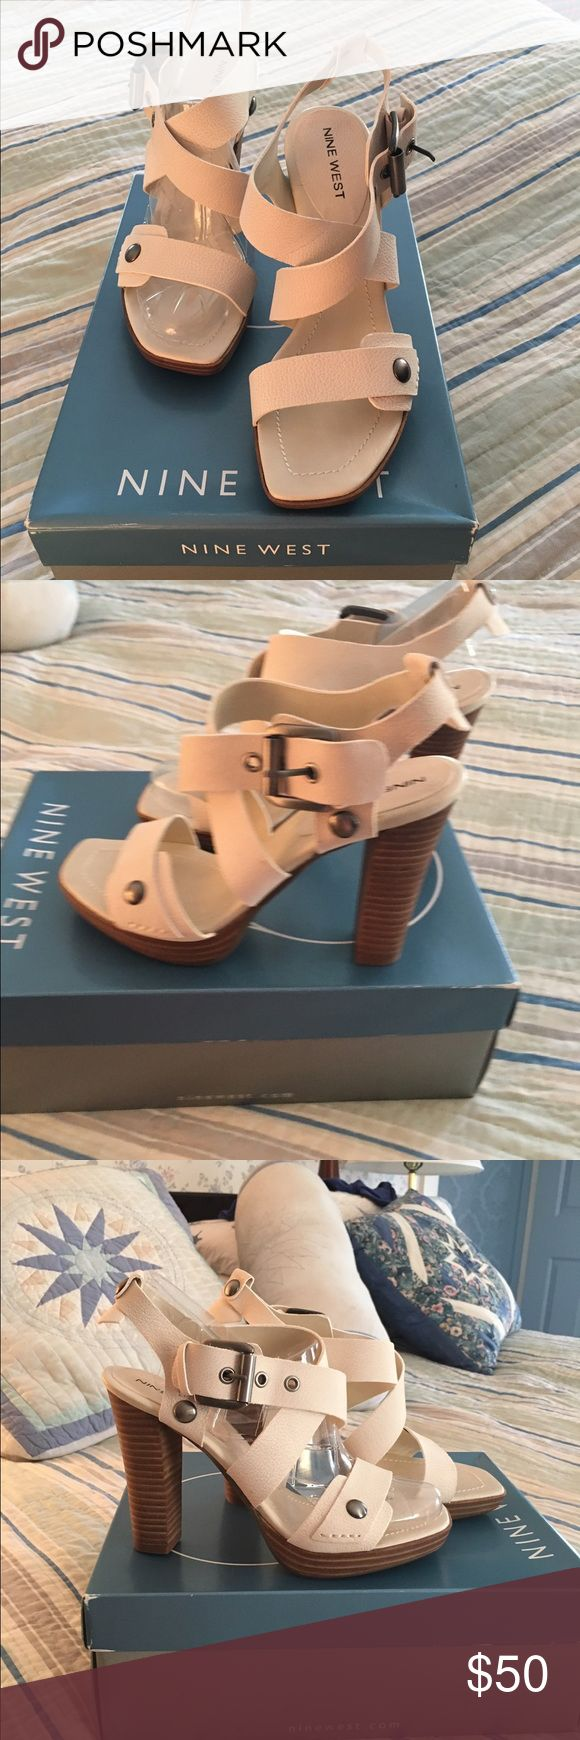 "Nine West ""Elirissa"" Open Toe Platform Heels Ivory sandals with leather uppers, man made soles and decorative silver hardware. The insoles are nicely cushioned and the height is very comfortable due to the broadness of the heel. Perfect condition, never worn. (Stickers still on).  4.5"" stacked heel. .75"" platform.  Original box. Perfect for Spring 🌺🌸🌼 Nine West Shoes Platforms"